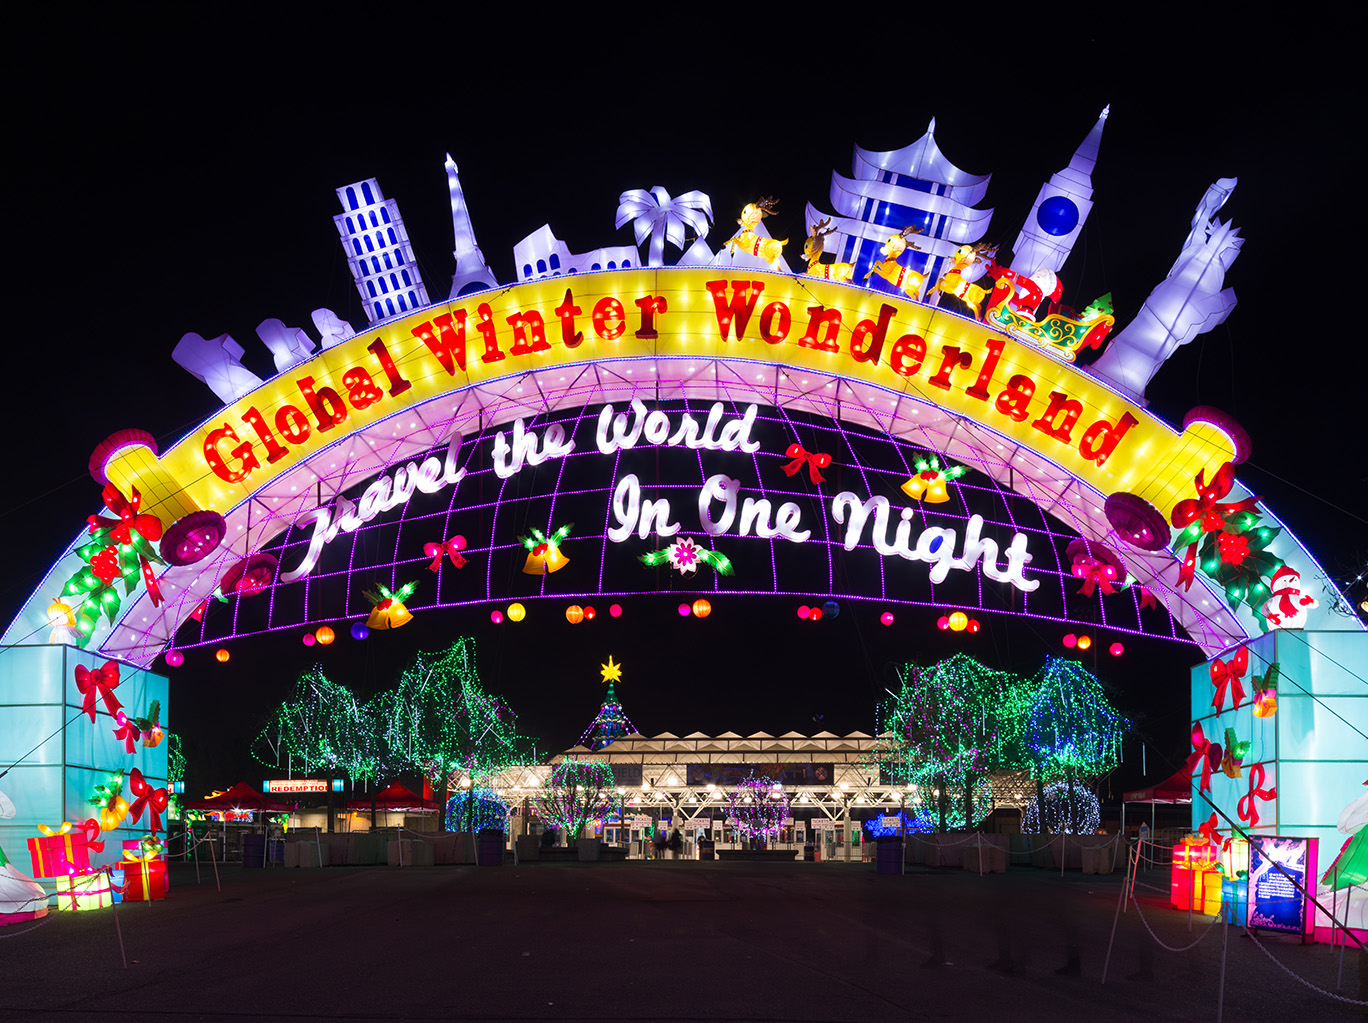 Global Winter Wonderland | Chinese Lantern Festival | San Diego